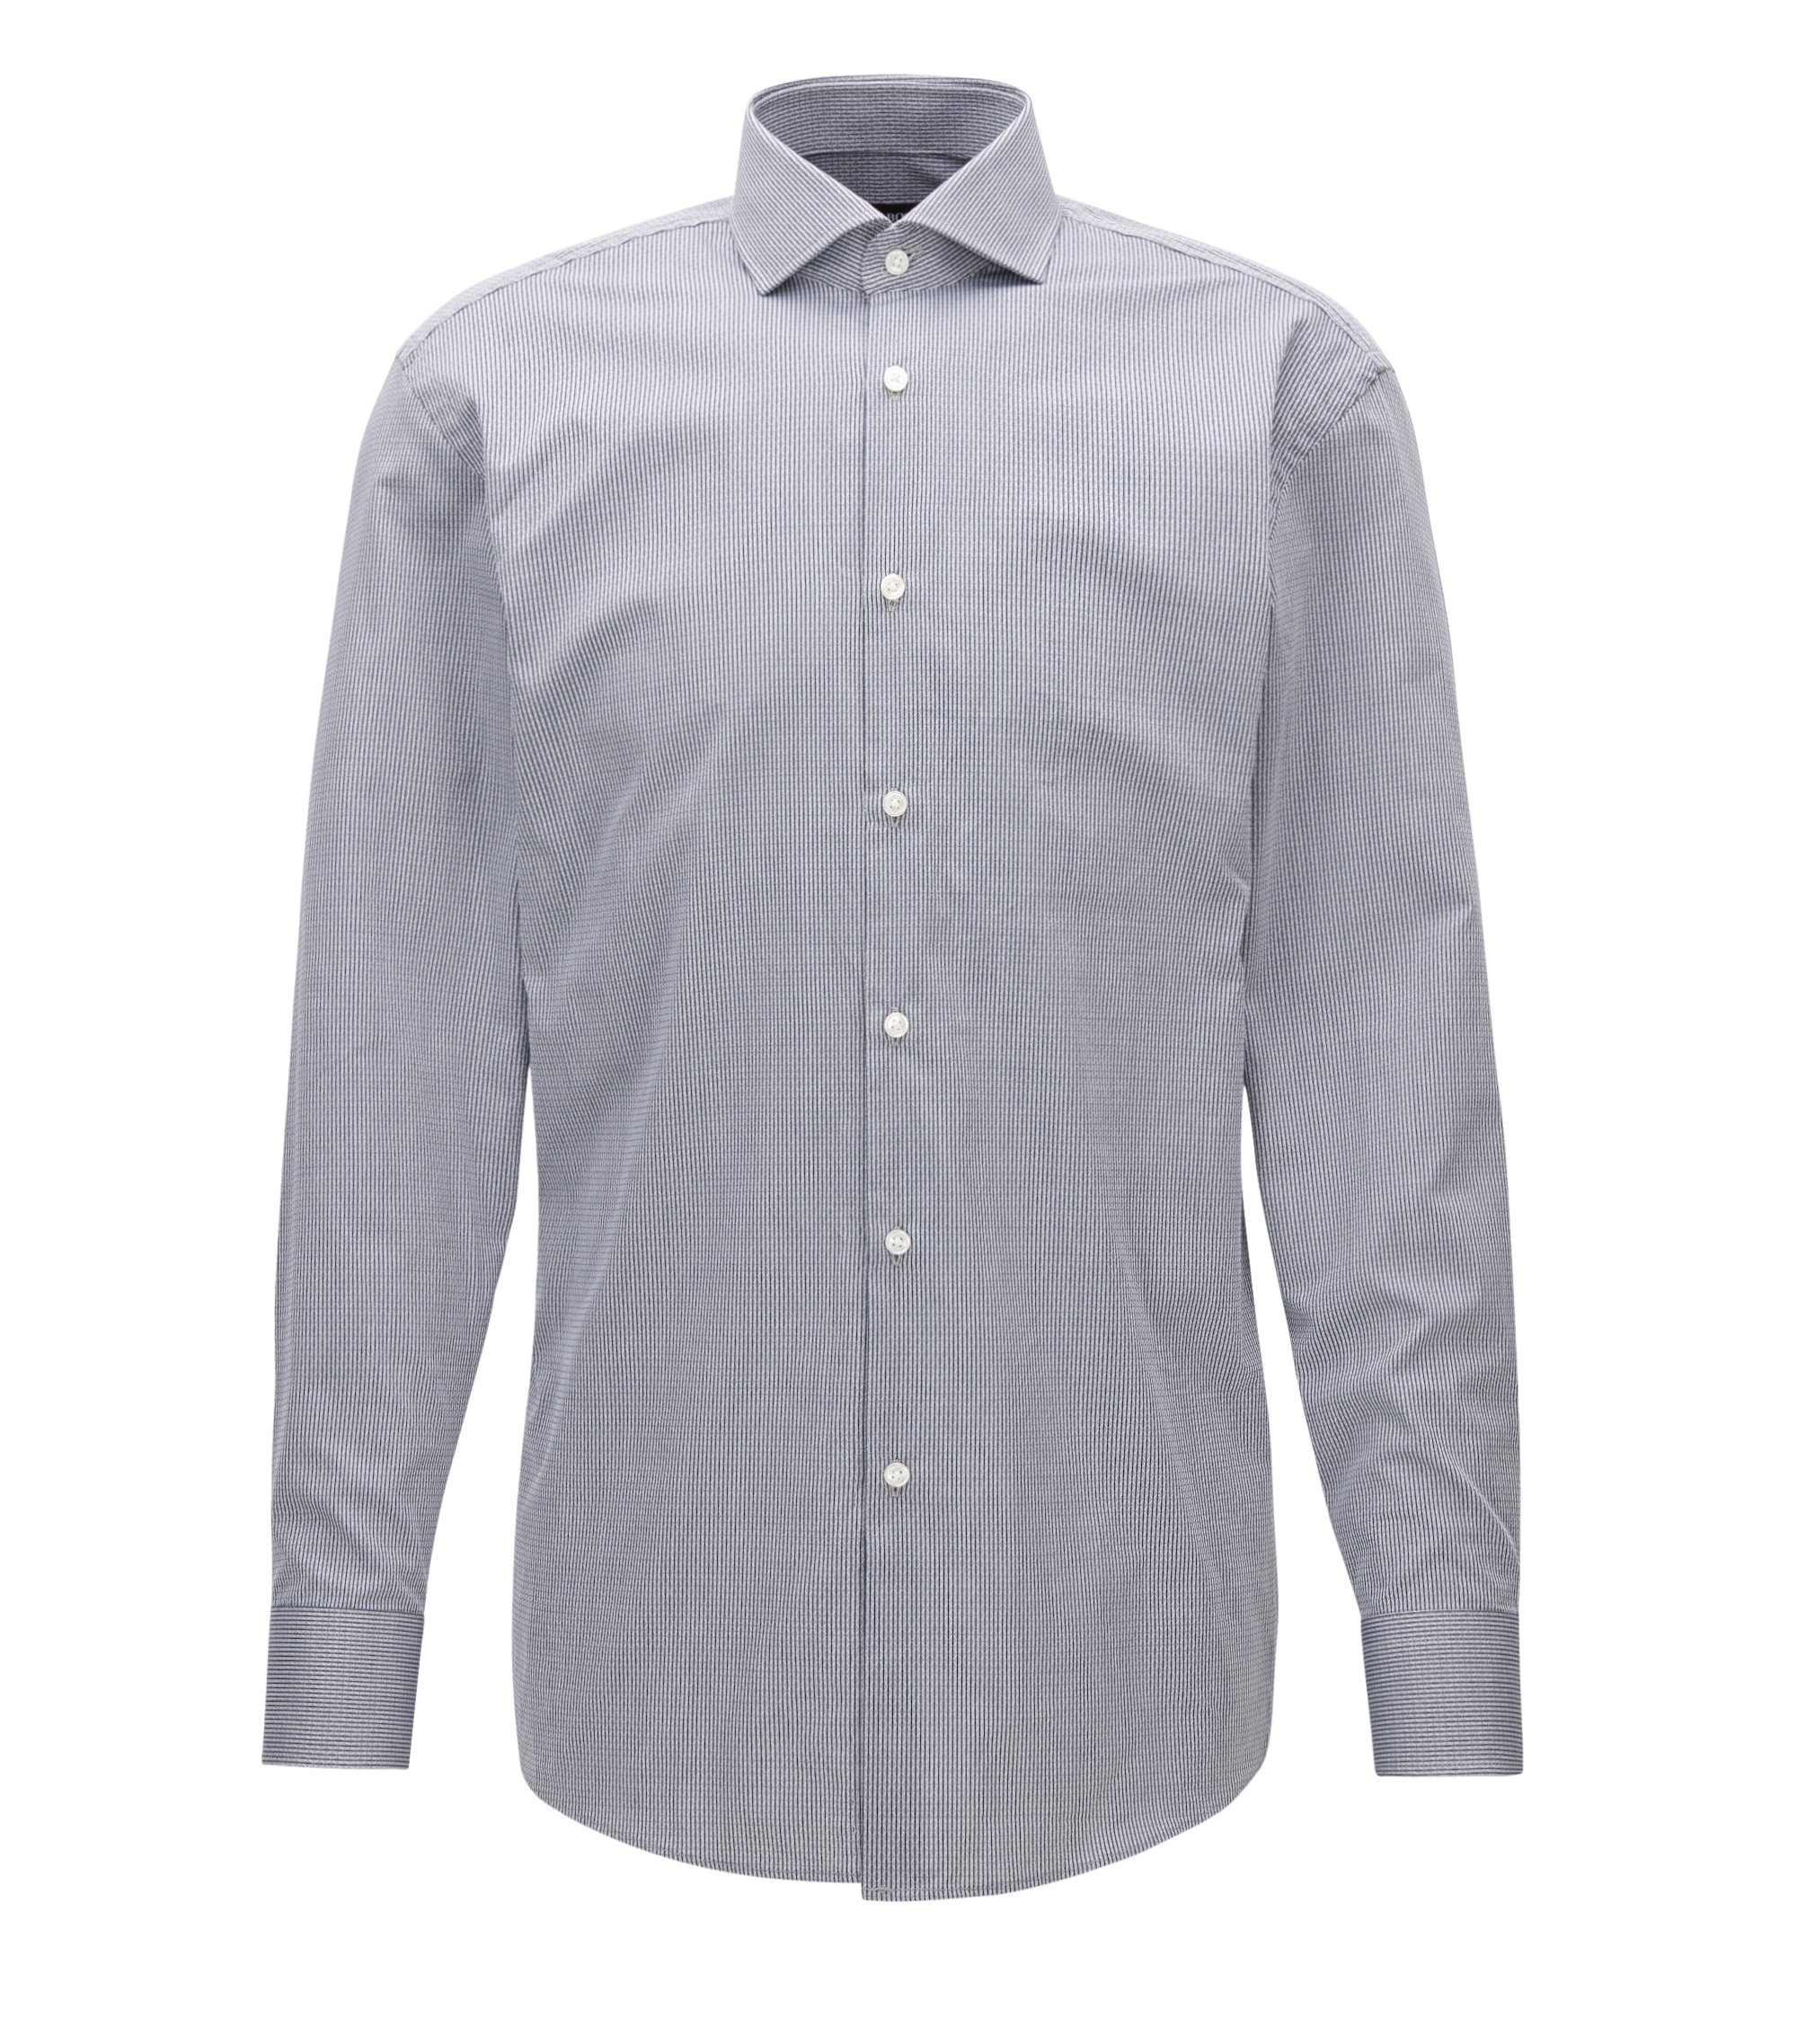 Pinstripe Patterned Cotton Dress Shirt, Sharp Fit | Mark US, Dark Grey